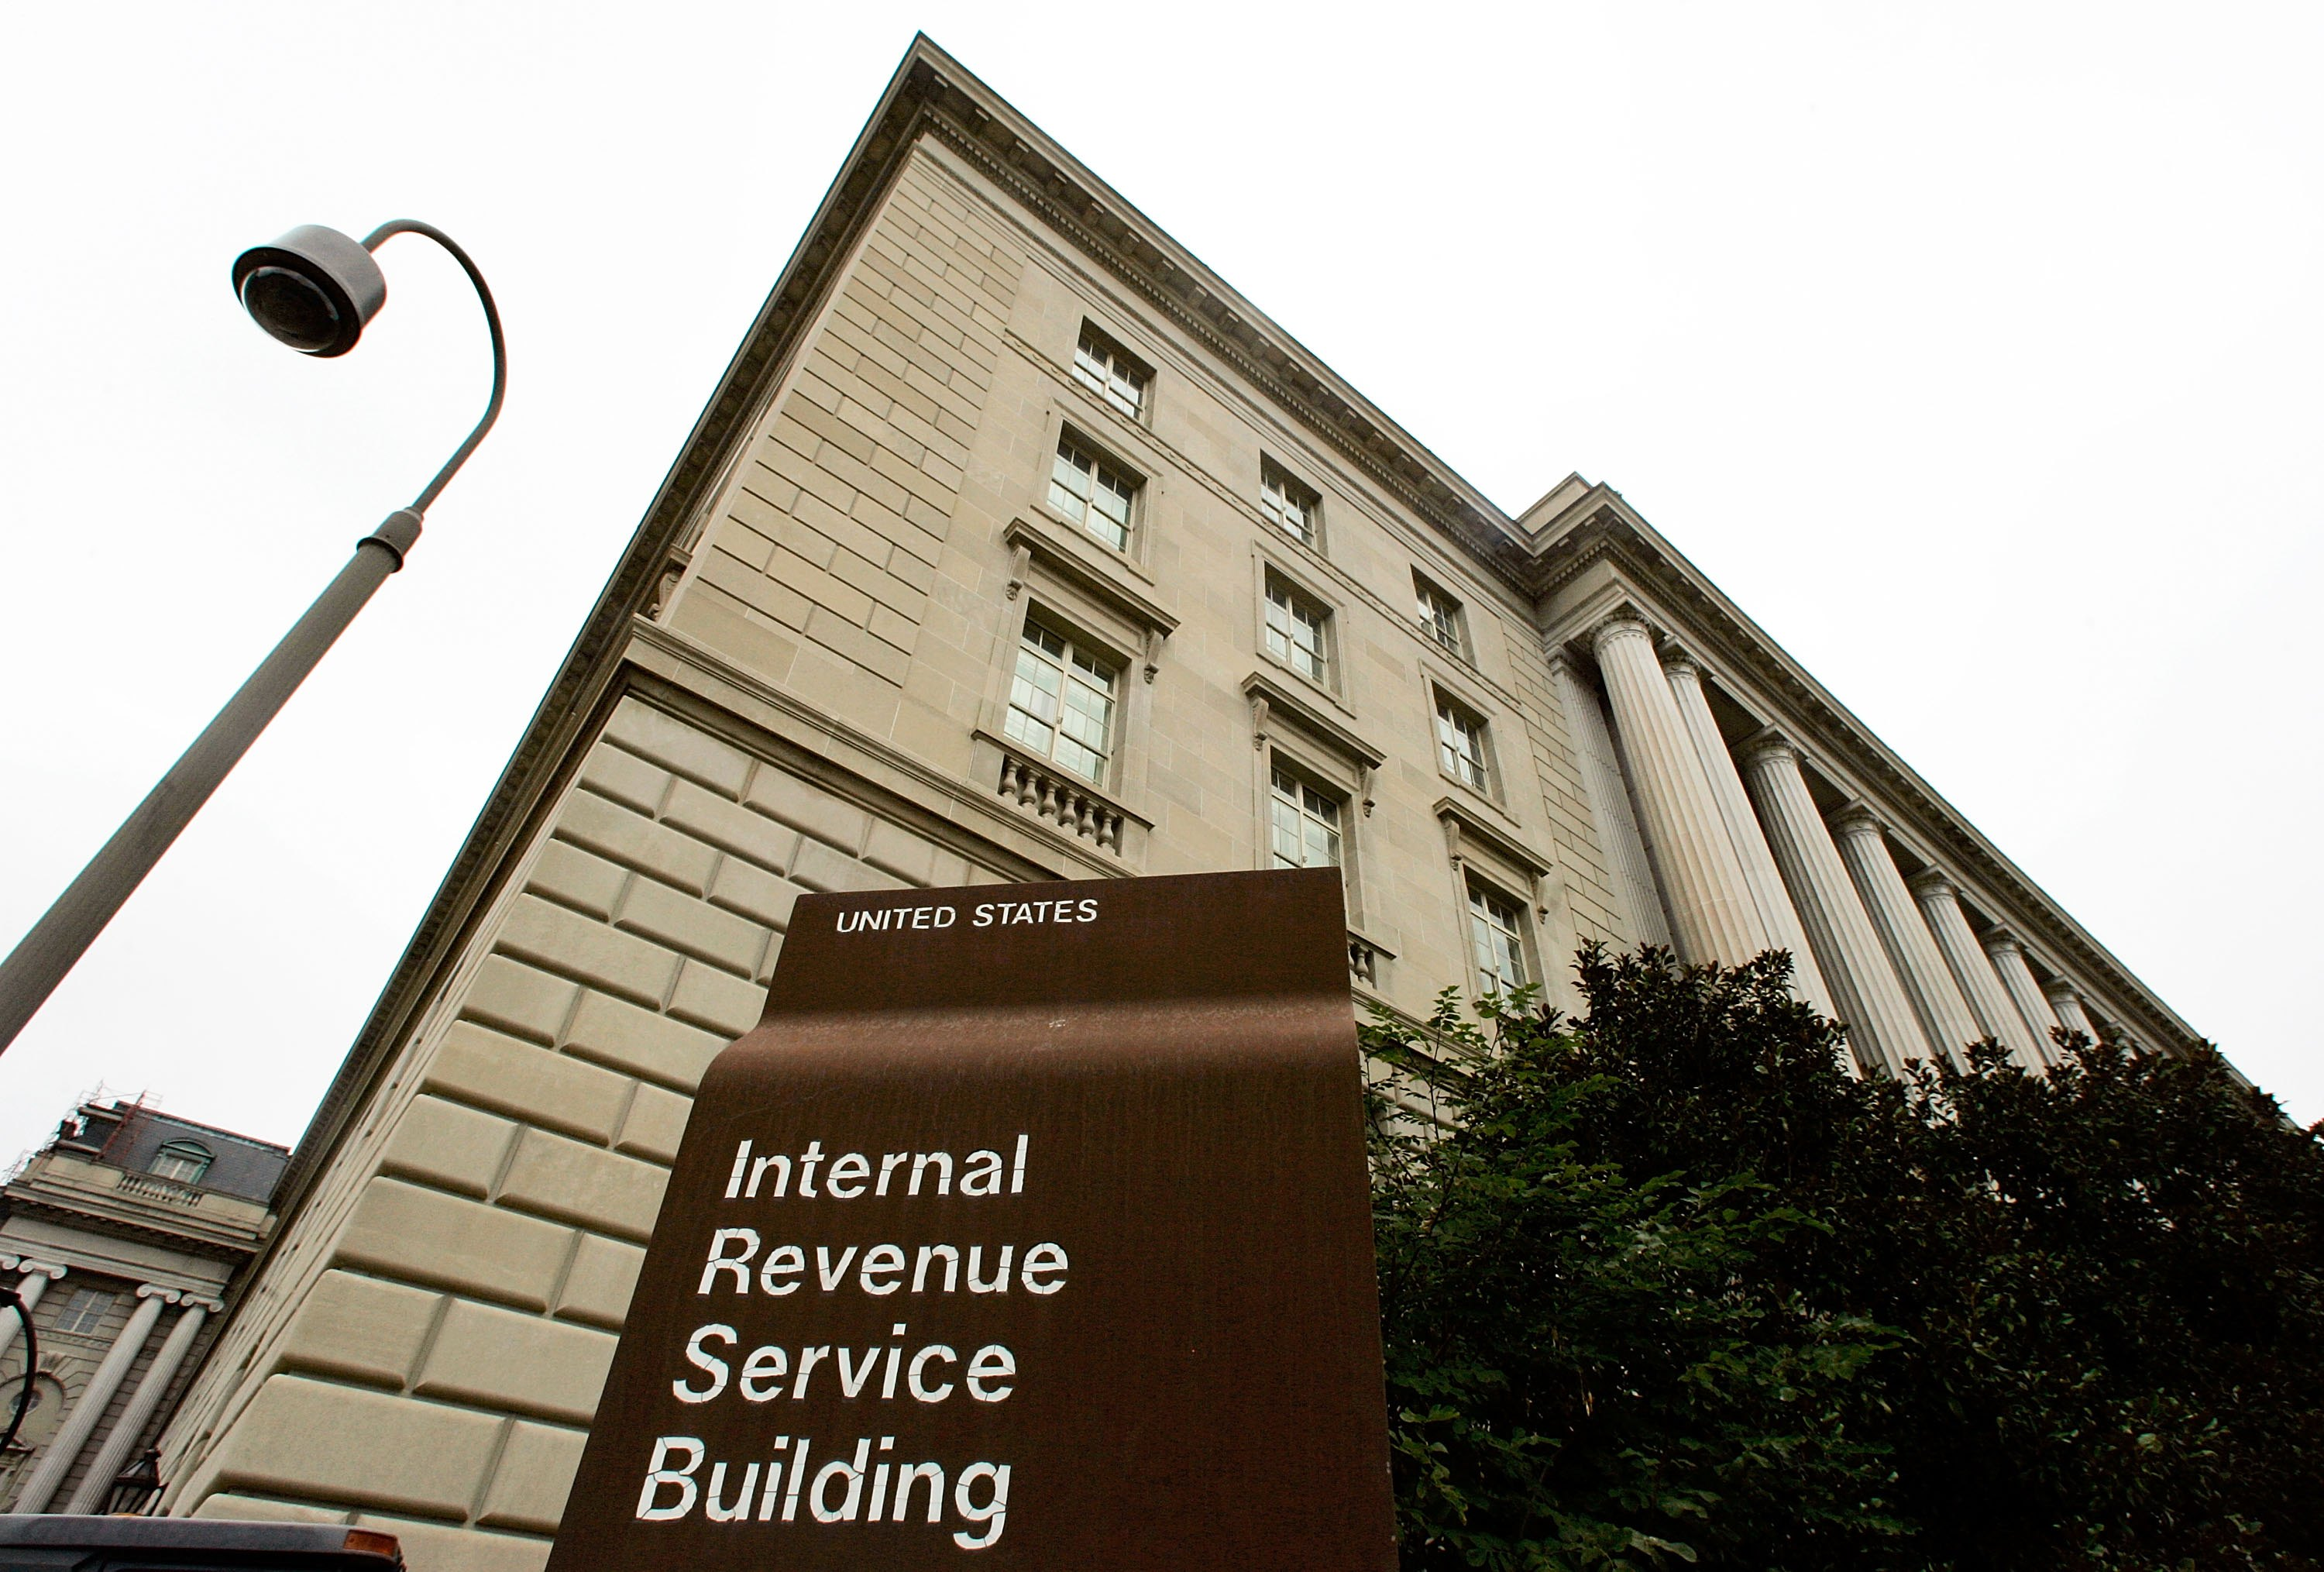 The IRS continued to insist on warrantless e-mail access, internal documents obtained by the ACLU show, even after a federal appeals court said the Fourth Amendment applied.